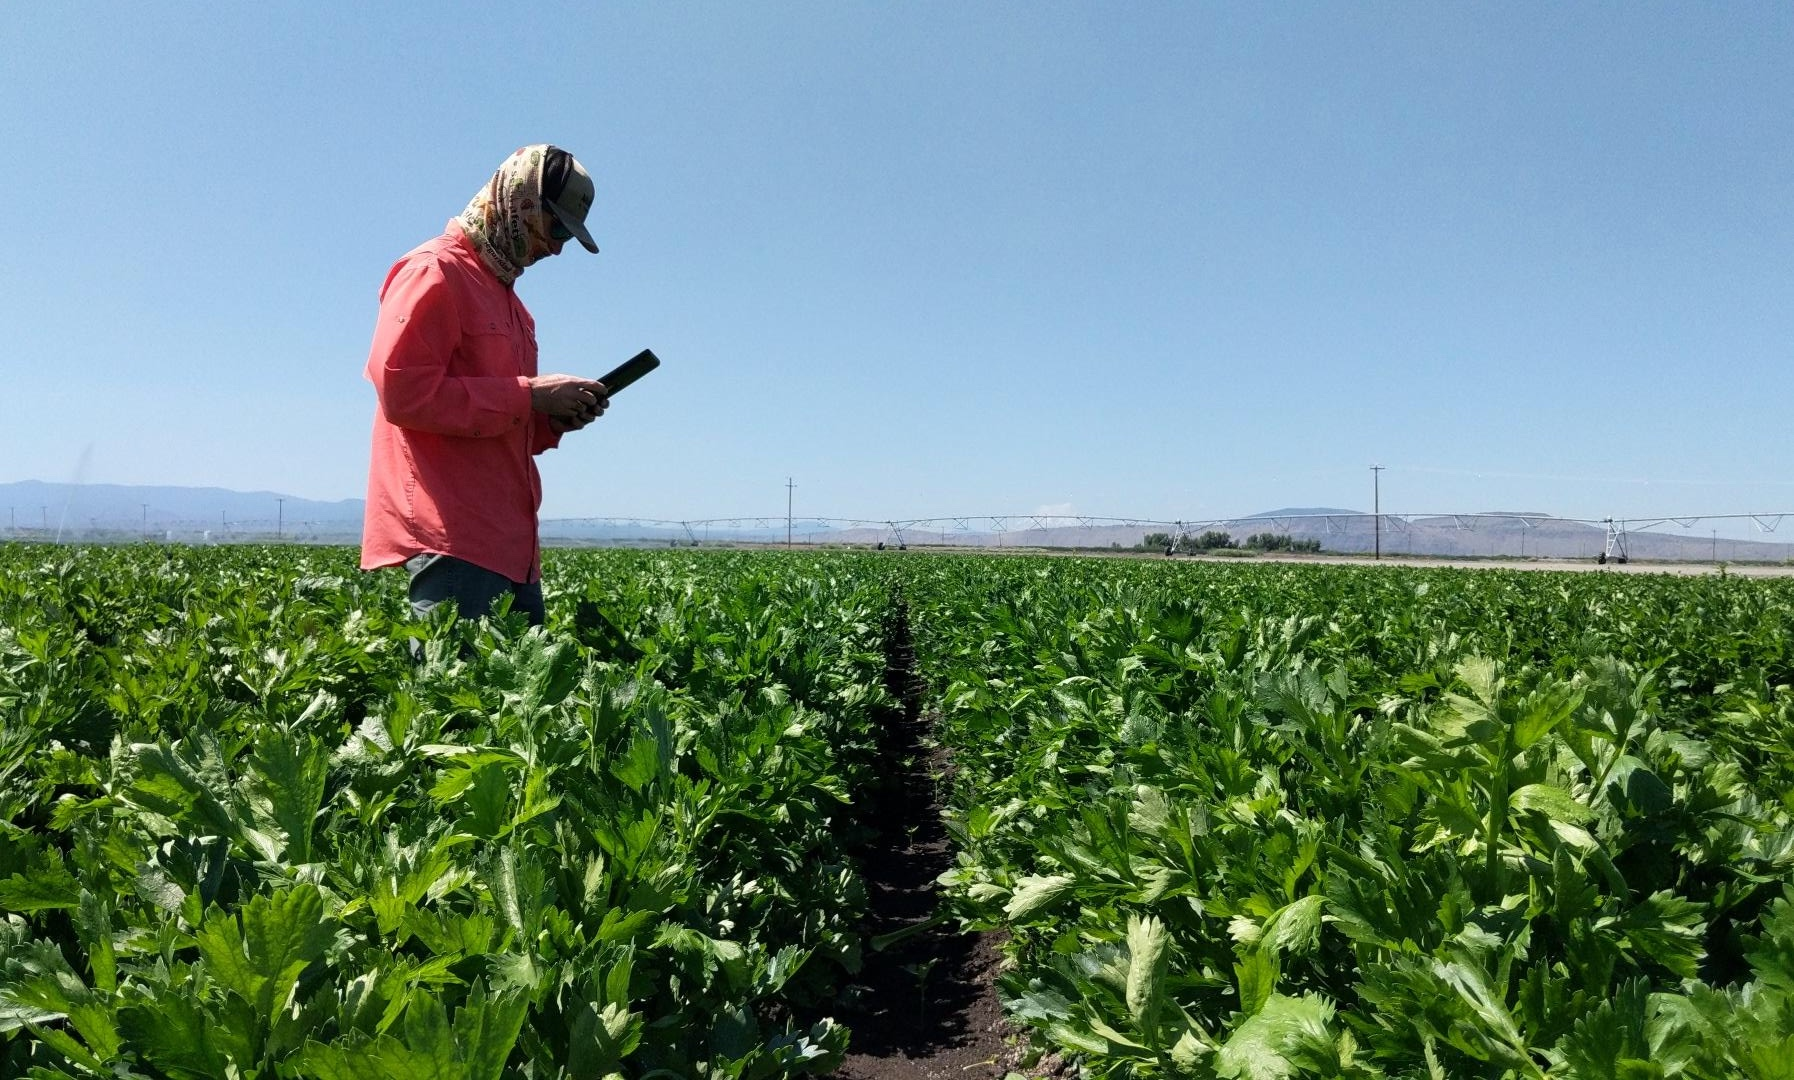 Ryan Tomlin checking his tablet in a field image